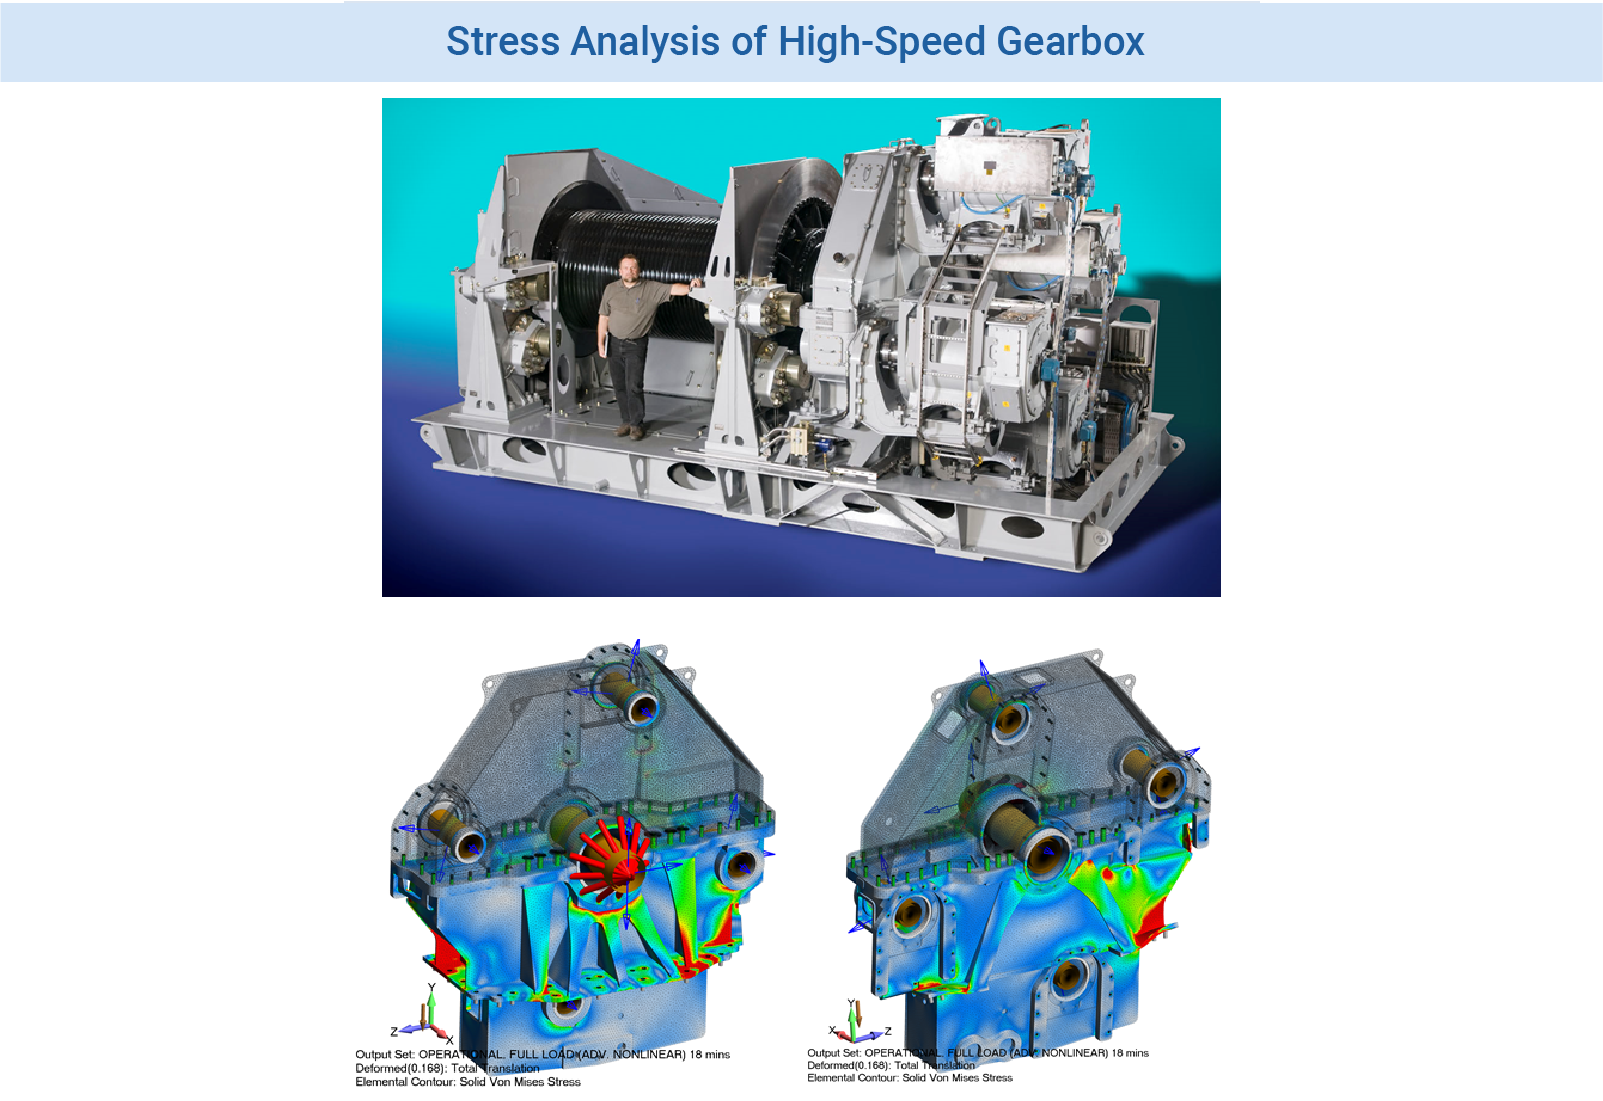 FEA Simulation - Gearbox Analysis for High-Speed Off-Shore Winch